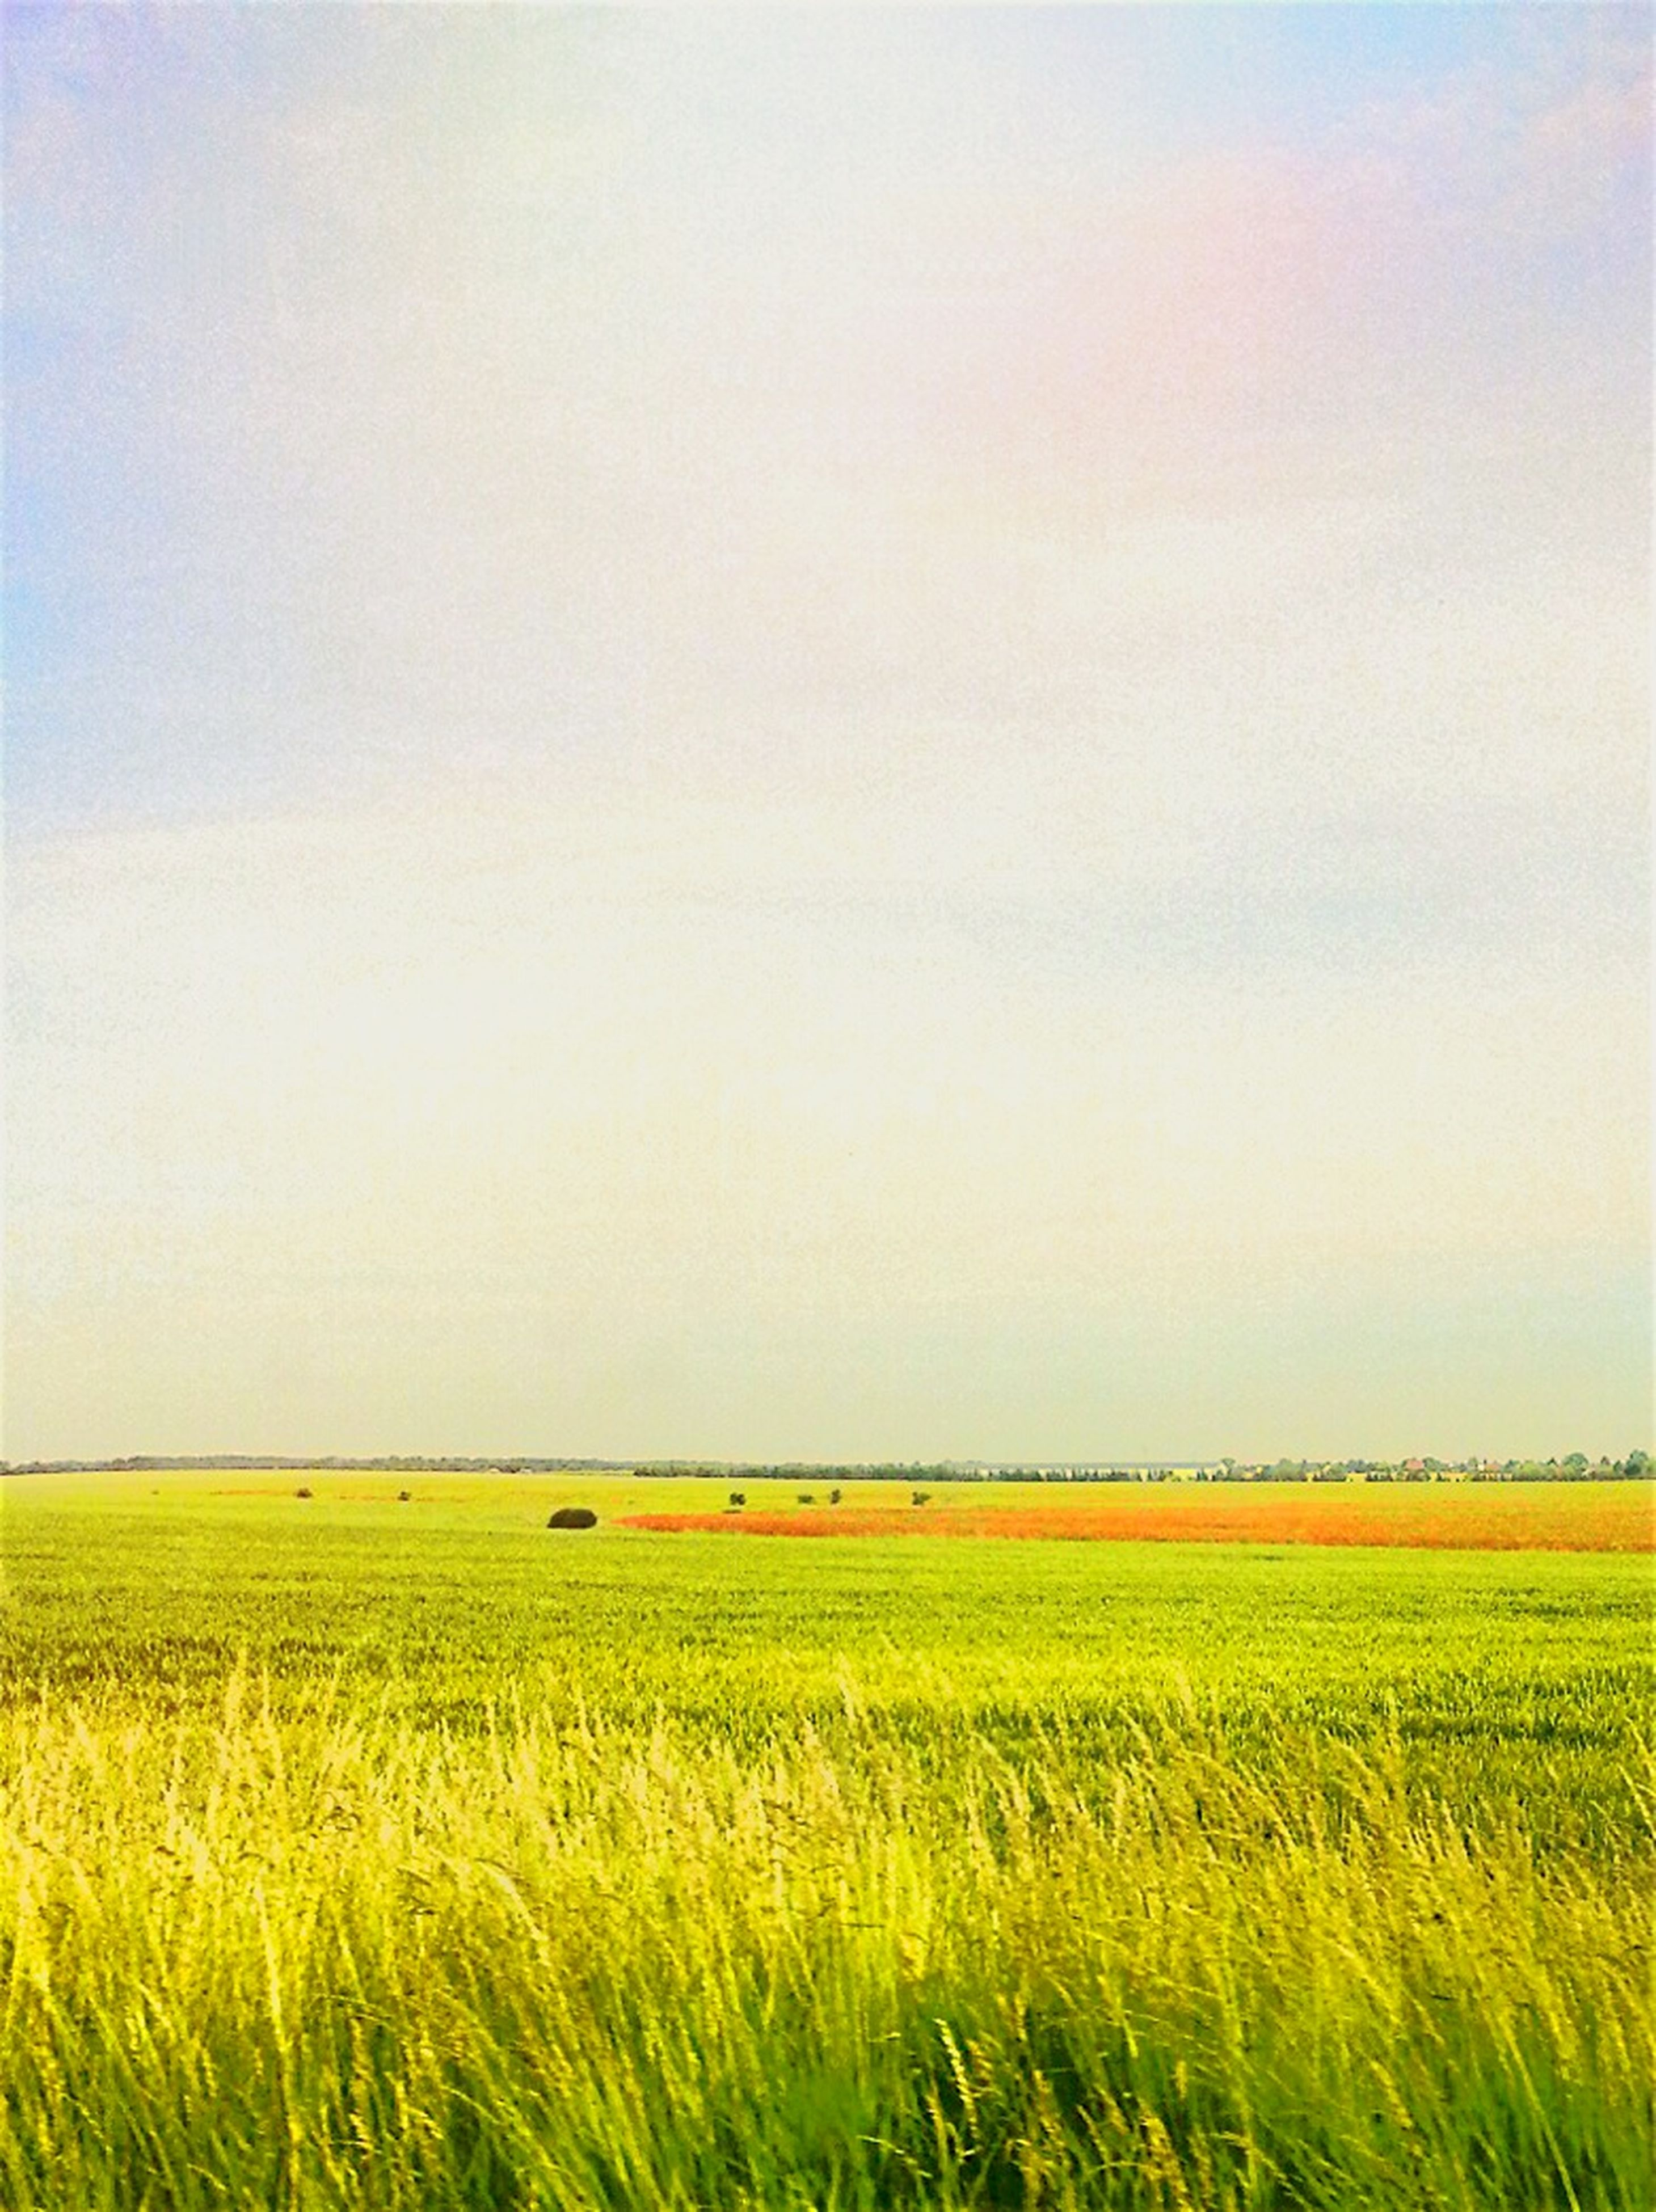 agriculture, field, rural scene, landscape, crop, farm, tranquil scene, growth, tranquility, beauty in nature, cultivated land, scenics, nature, yellow, copy space, grass, clear sky, sky, horizon over land, cereal plant